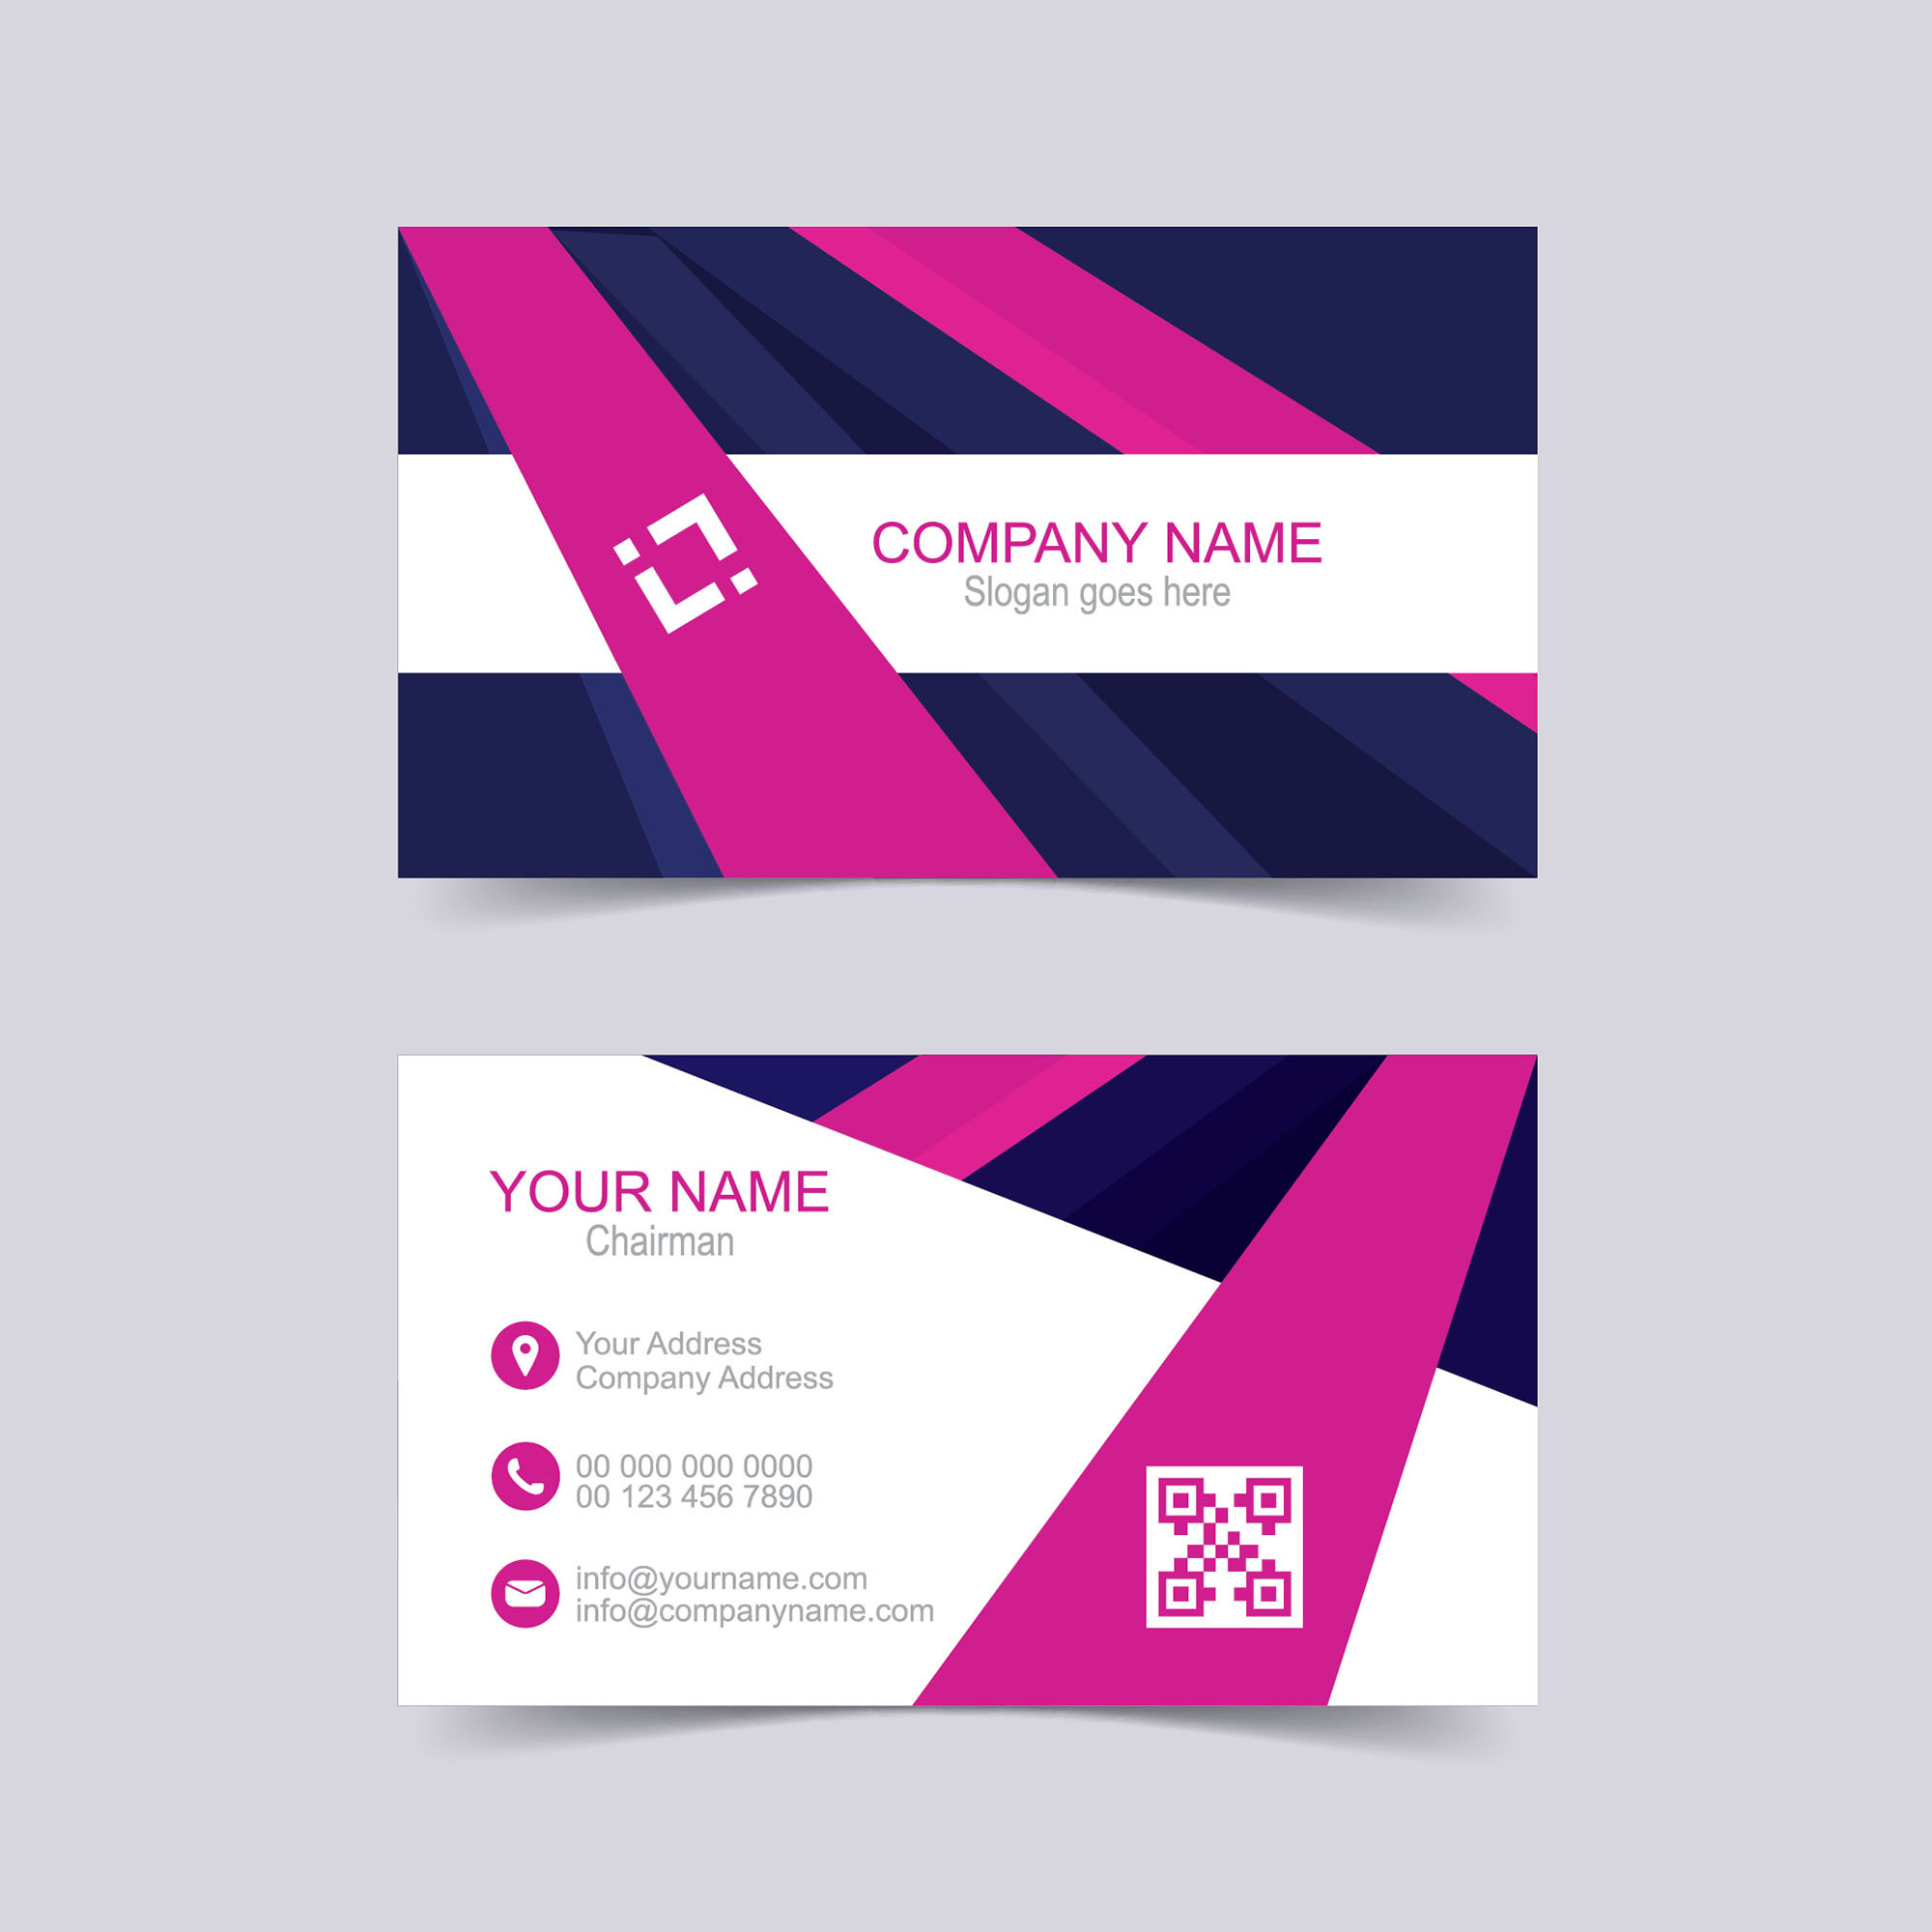 Vector creative business card free download wisxi business card business cards business card design business card template design templates accmission Gallery